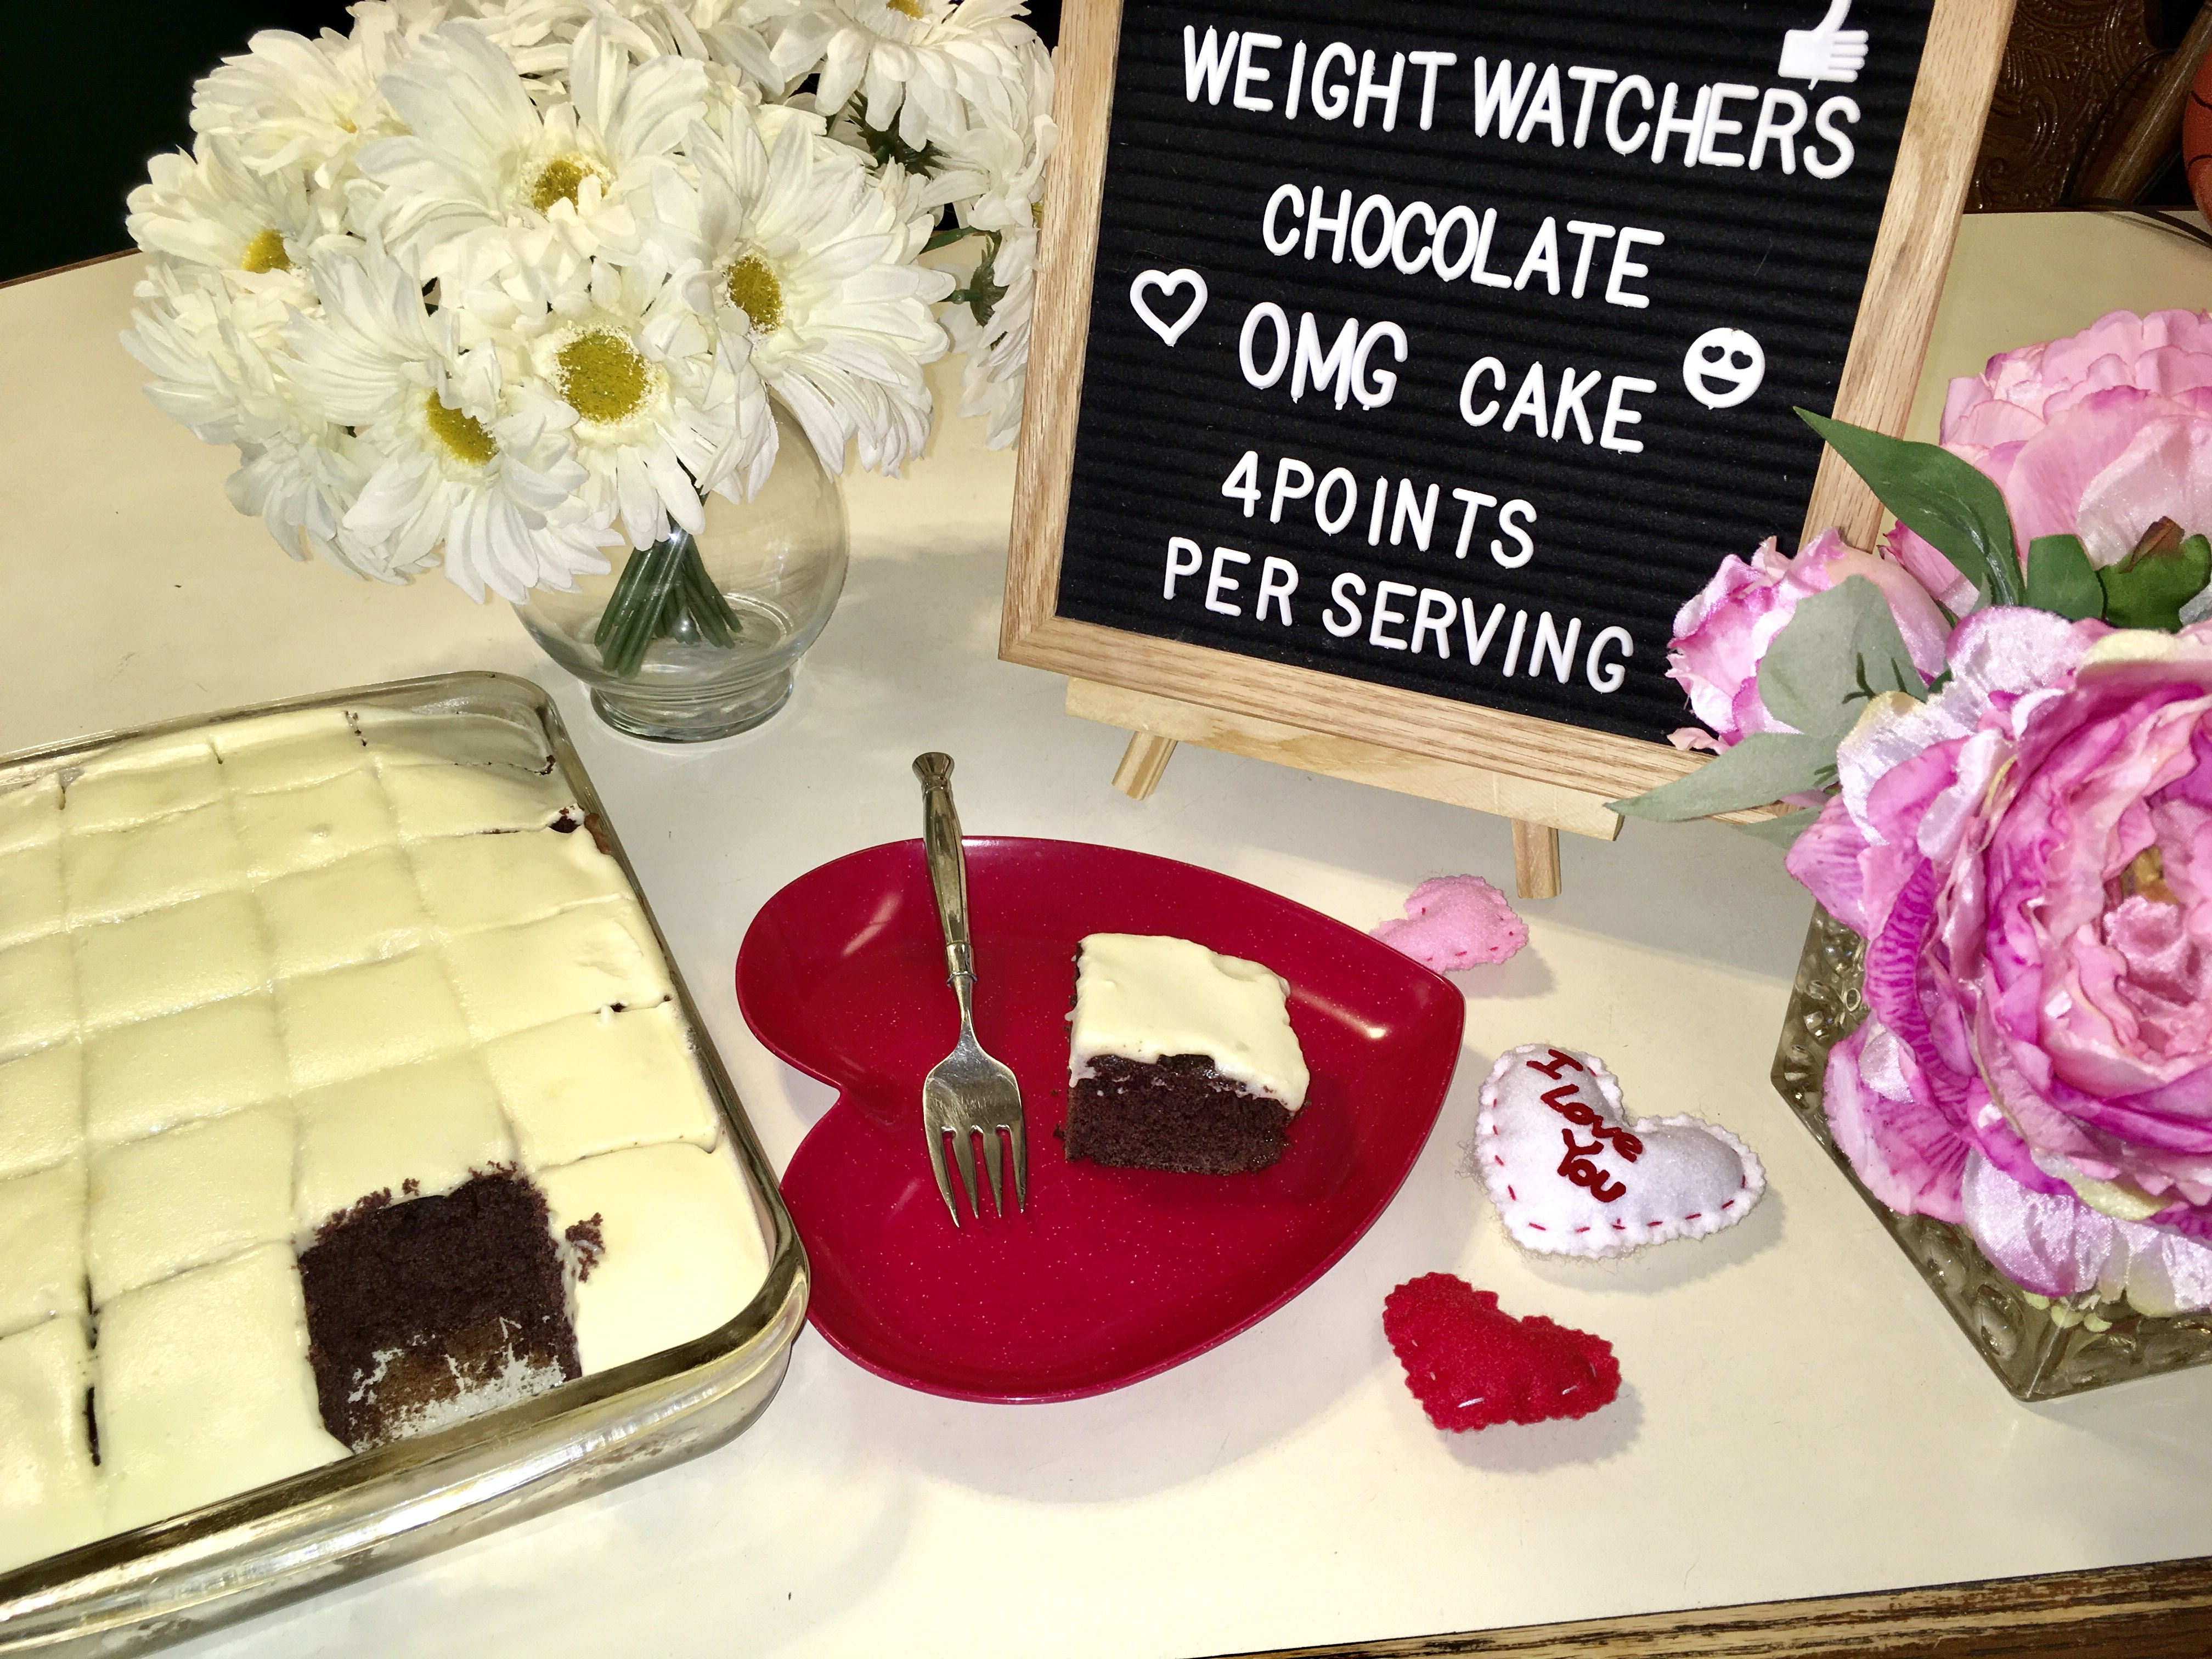 Make Chocolate Weight Watchers Cake for only 4 SmartPoints per serving! A delicious and easy recipe that is perfect for your chocolate craving!